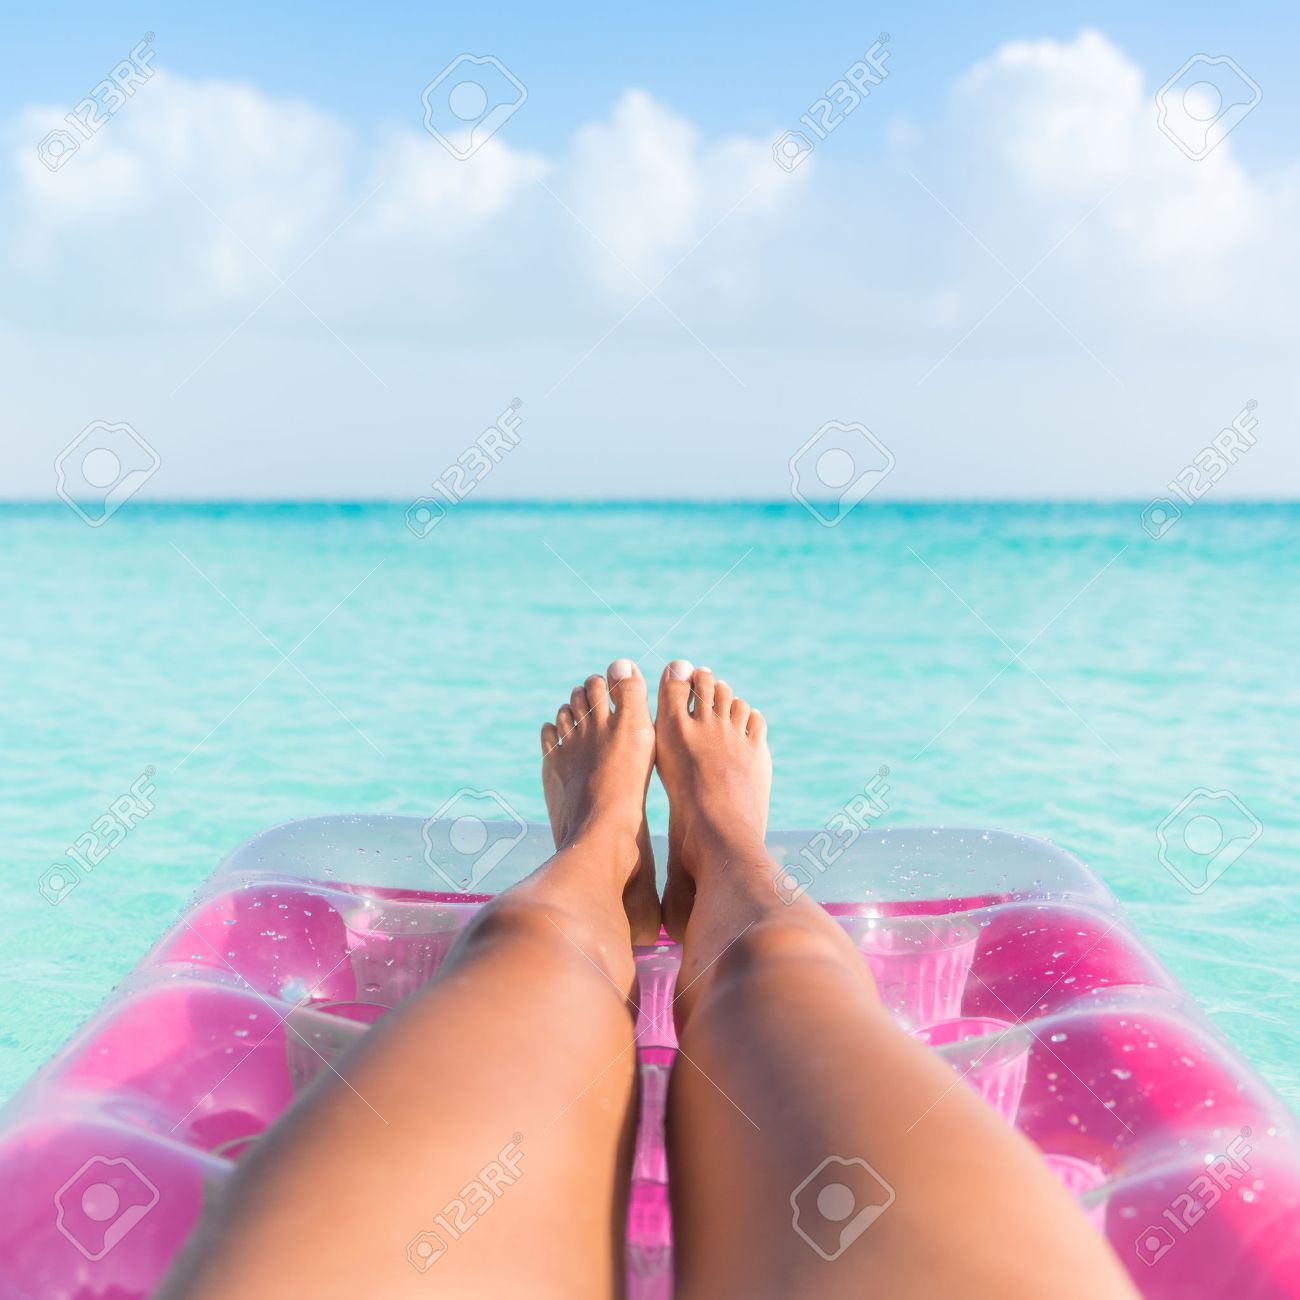 Summer vacation girl lower body closeup. Woman tanning legs relaxing in ocean on pink inflatable swimming pool air mattress bed floating in turquoise water background. Suntan at tropical beach. - 54264152